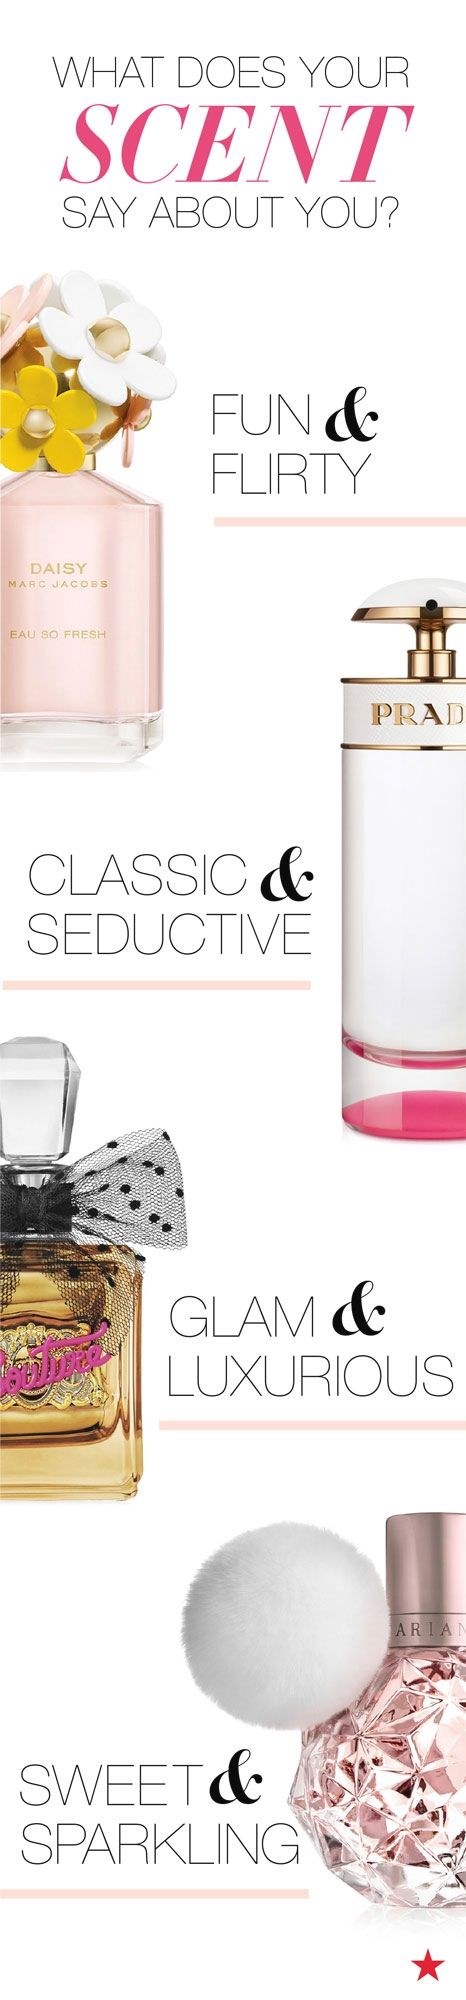 Top 10 Best Reviewed Womens Fragrances Perfume